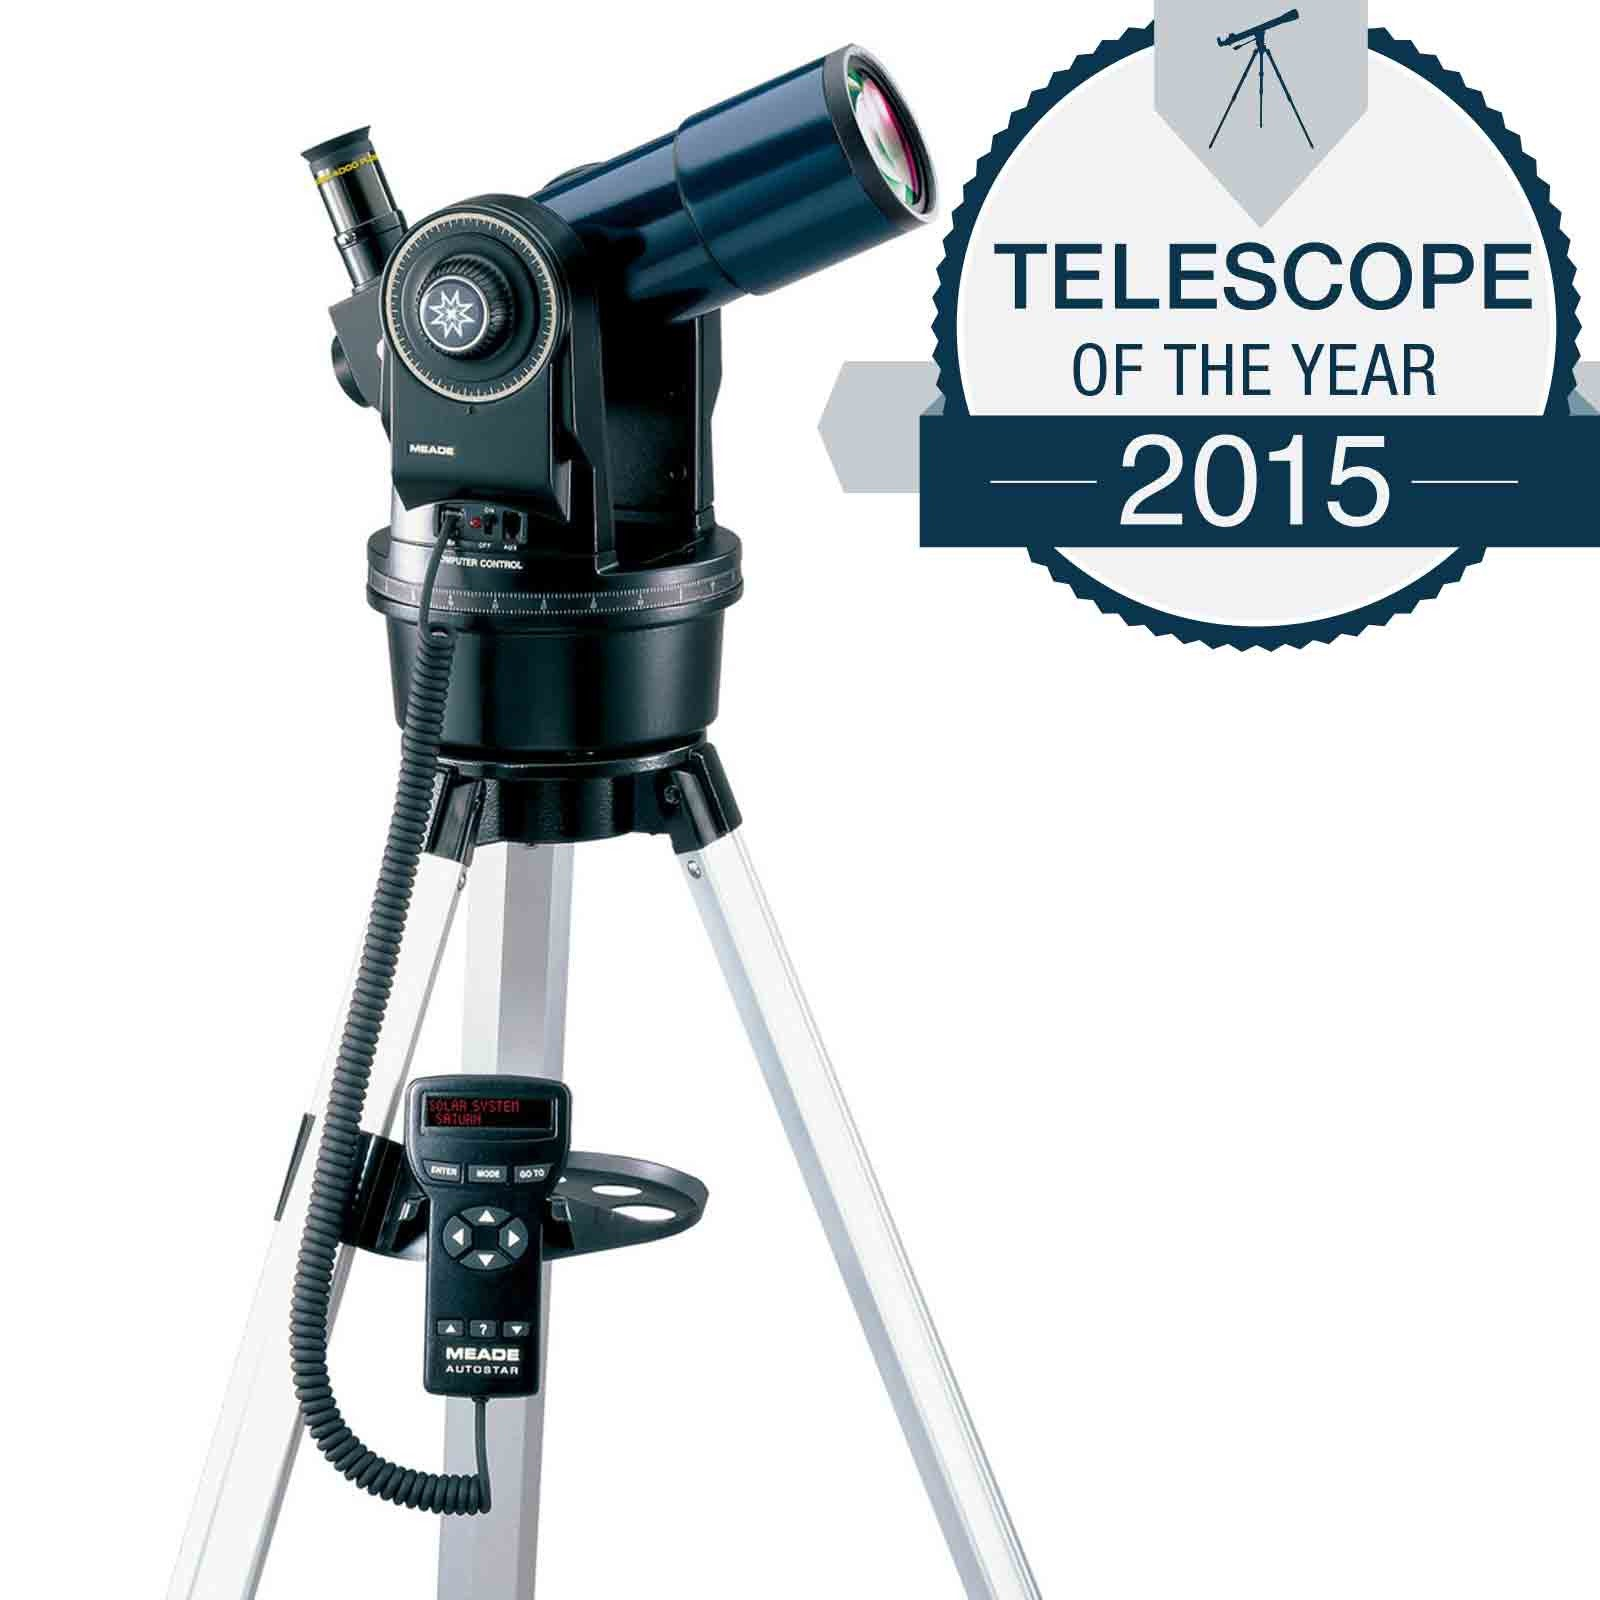 meade etx 80at tc astro telescope with autostar 0805 04 21 rh telescopesplus com